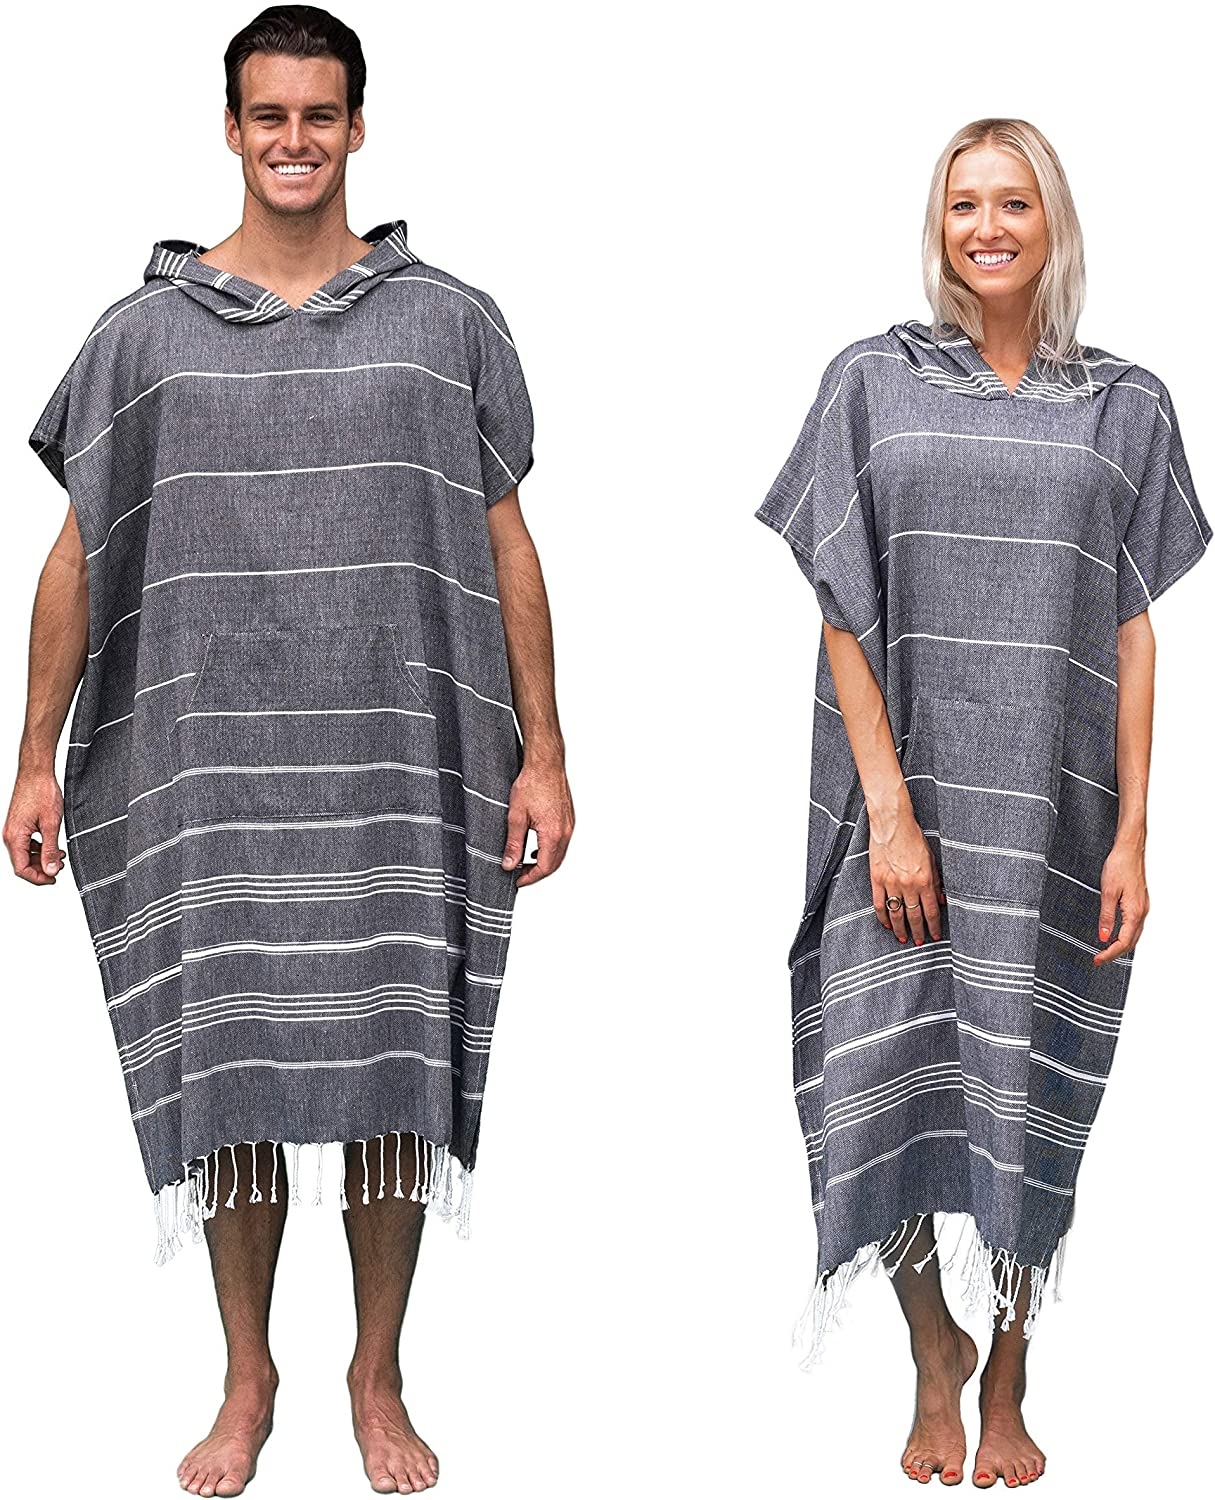 Adult Poncho Towel Microfibre Quick Dry Light Weight Wolf Animal Print Towel for Women Men Beach Swimming Surfing Wetsuit Travel Treer Changing Robe Hooded